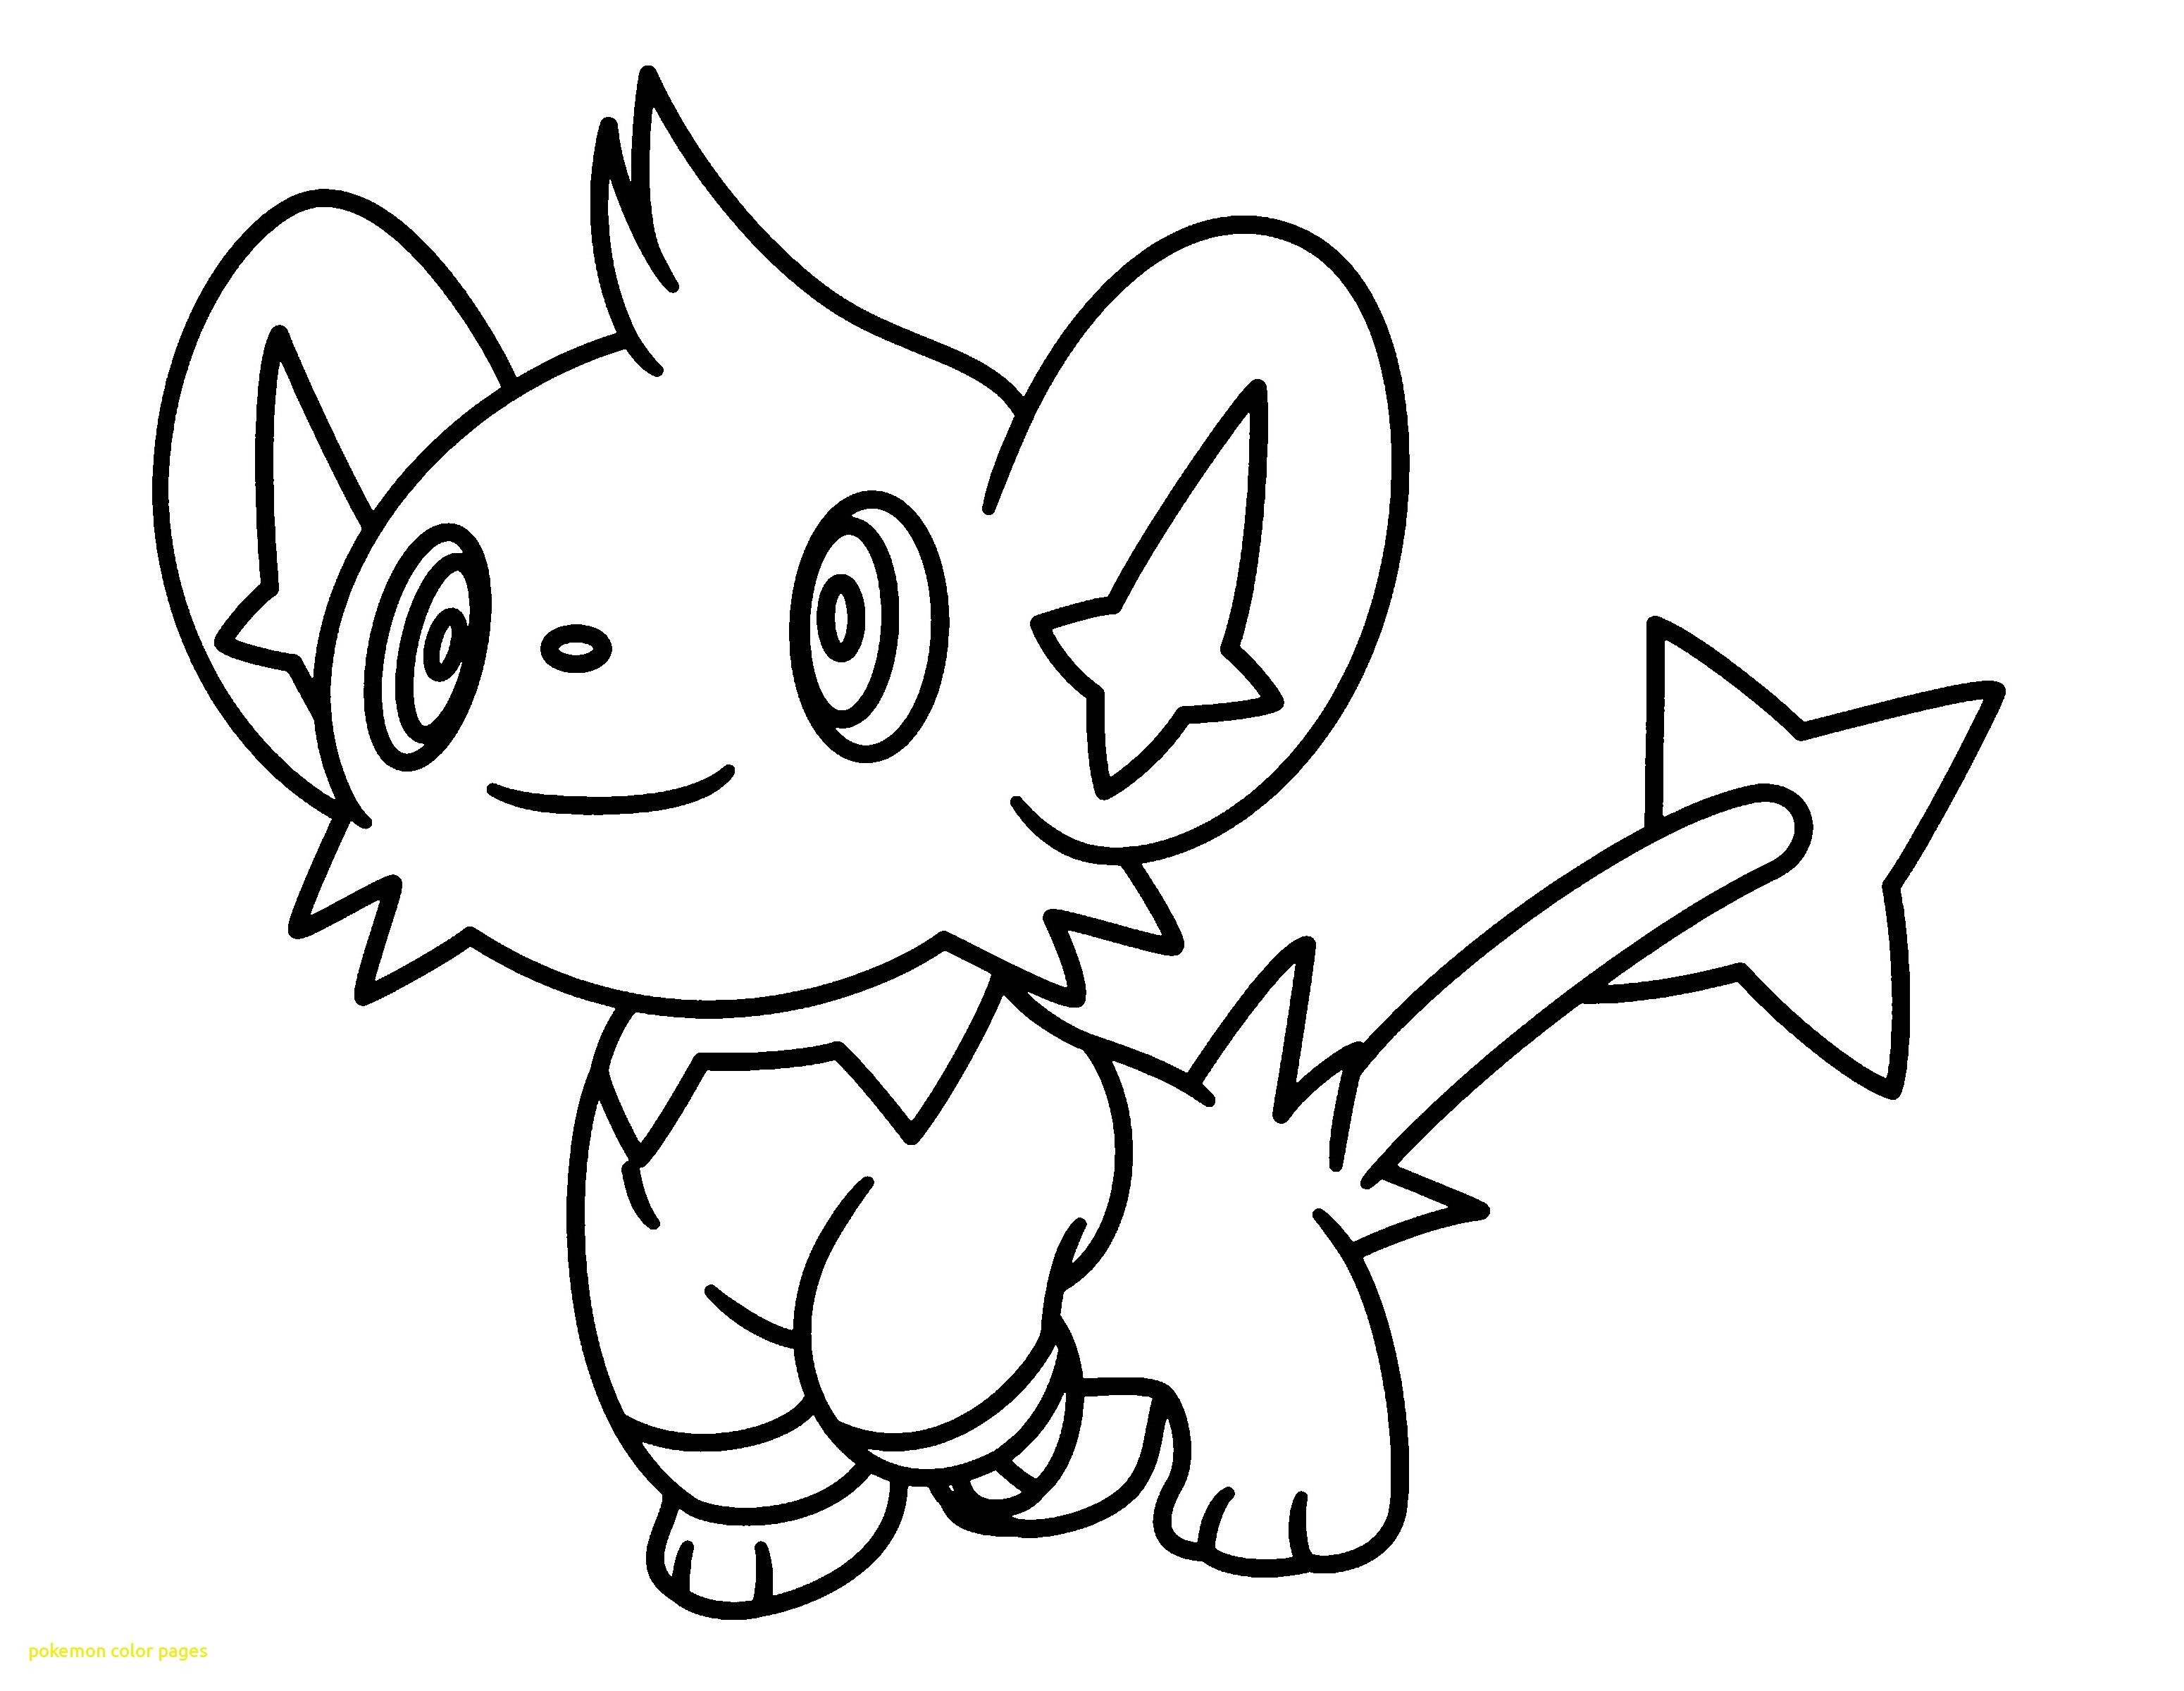 Pokemon Coloring Pages Alola From The Thousand Photos On Line With Regards To Pokemon Coloring Pokemon Coloring Pikachu Coloring Page Pokemon Coloring Pages